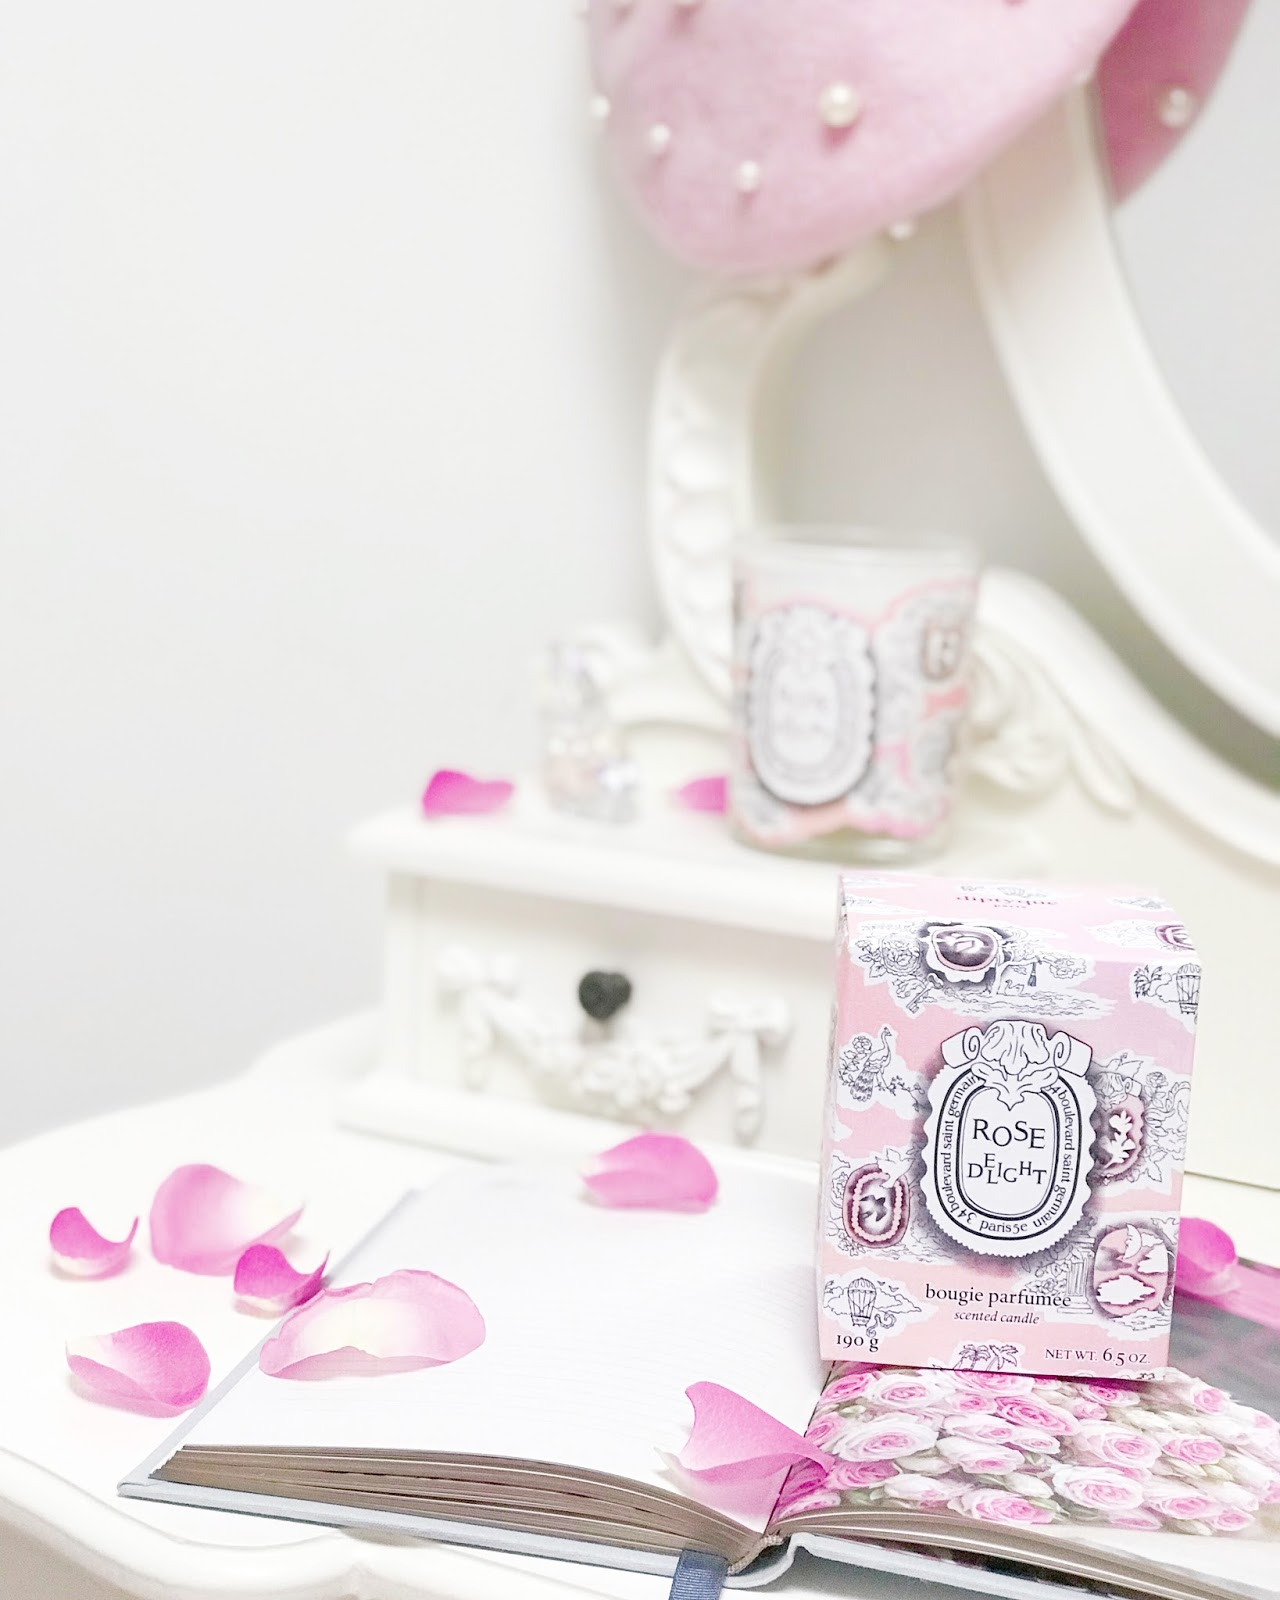 Diptyque Rose Delight Blog Review